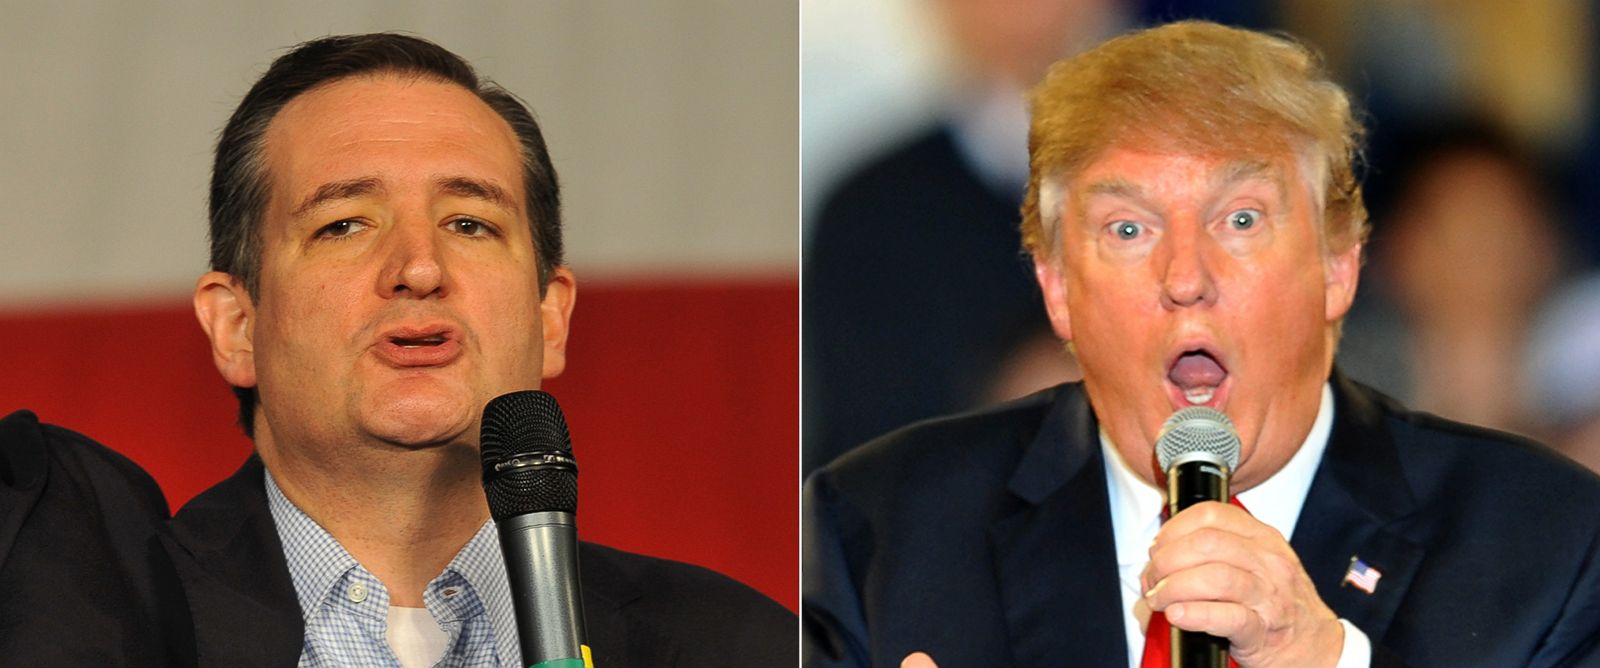 PHOTO: (L-R) Republican presidential candidate Sen. Ted Cruz at the Iowa State Fair in Des Moines, Iowa, Oct. 31, 2015. | Republican Presidential Candidate Donald Trump at a Town Hall style campaign rally in Des Moines, Iowa, Dec. 11, 2015.